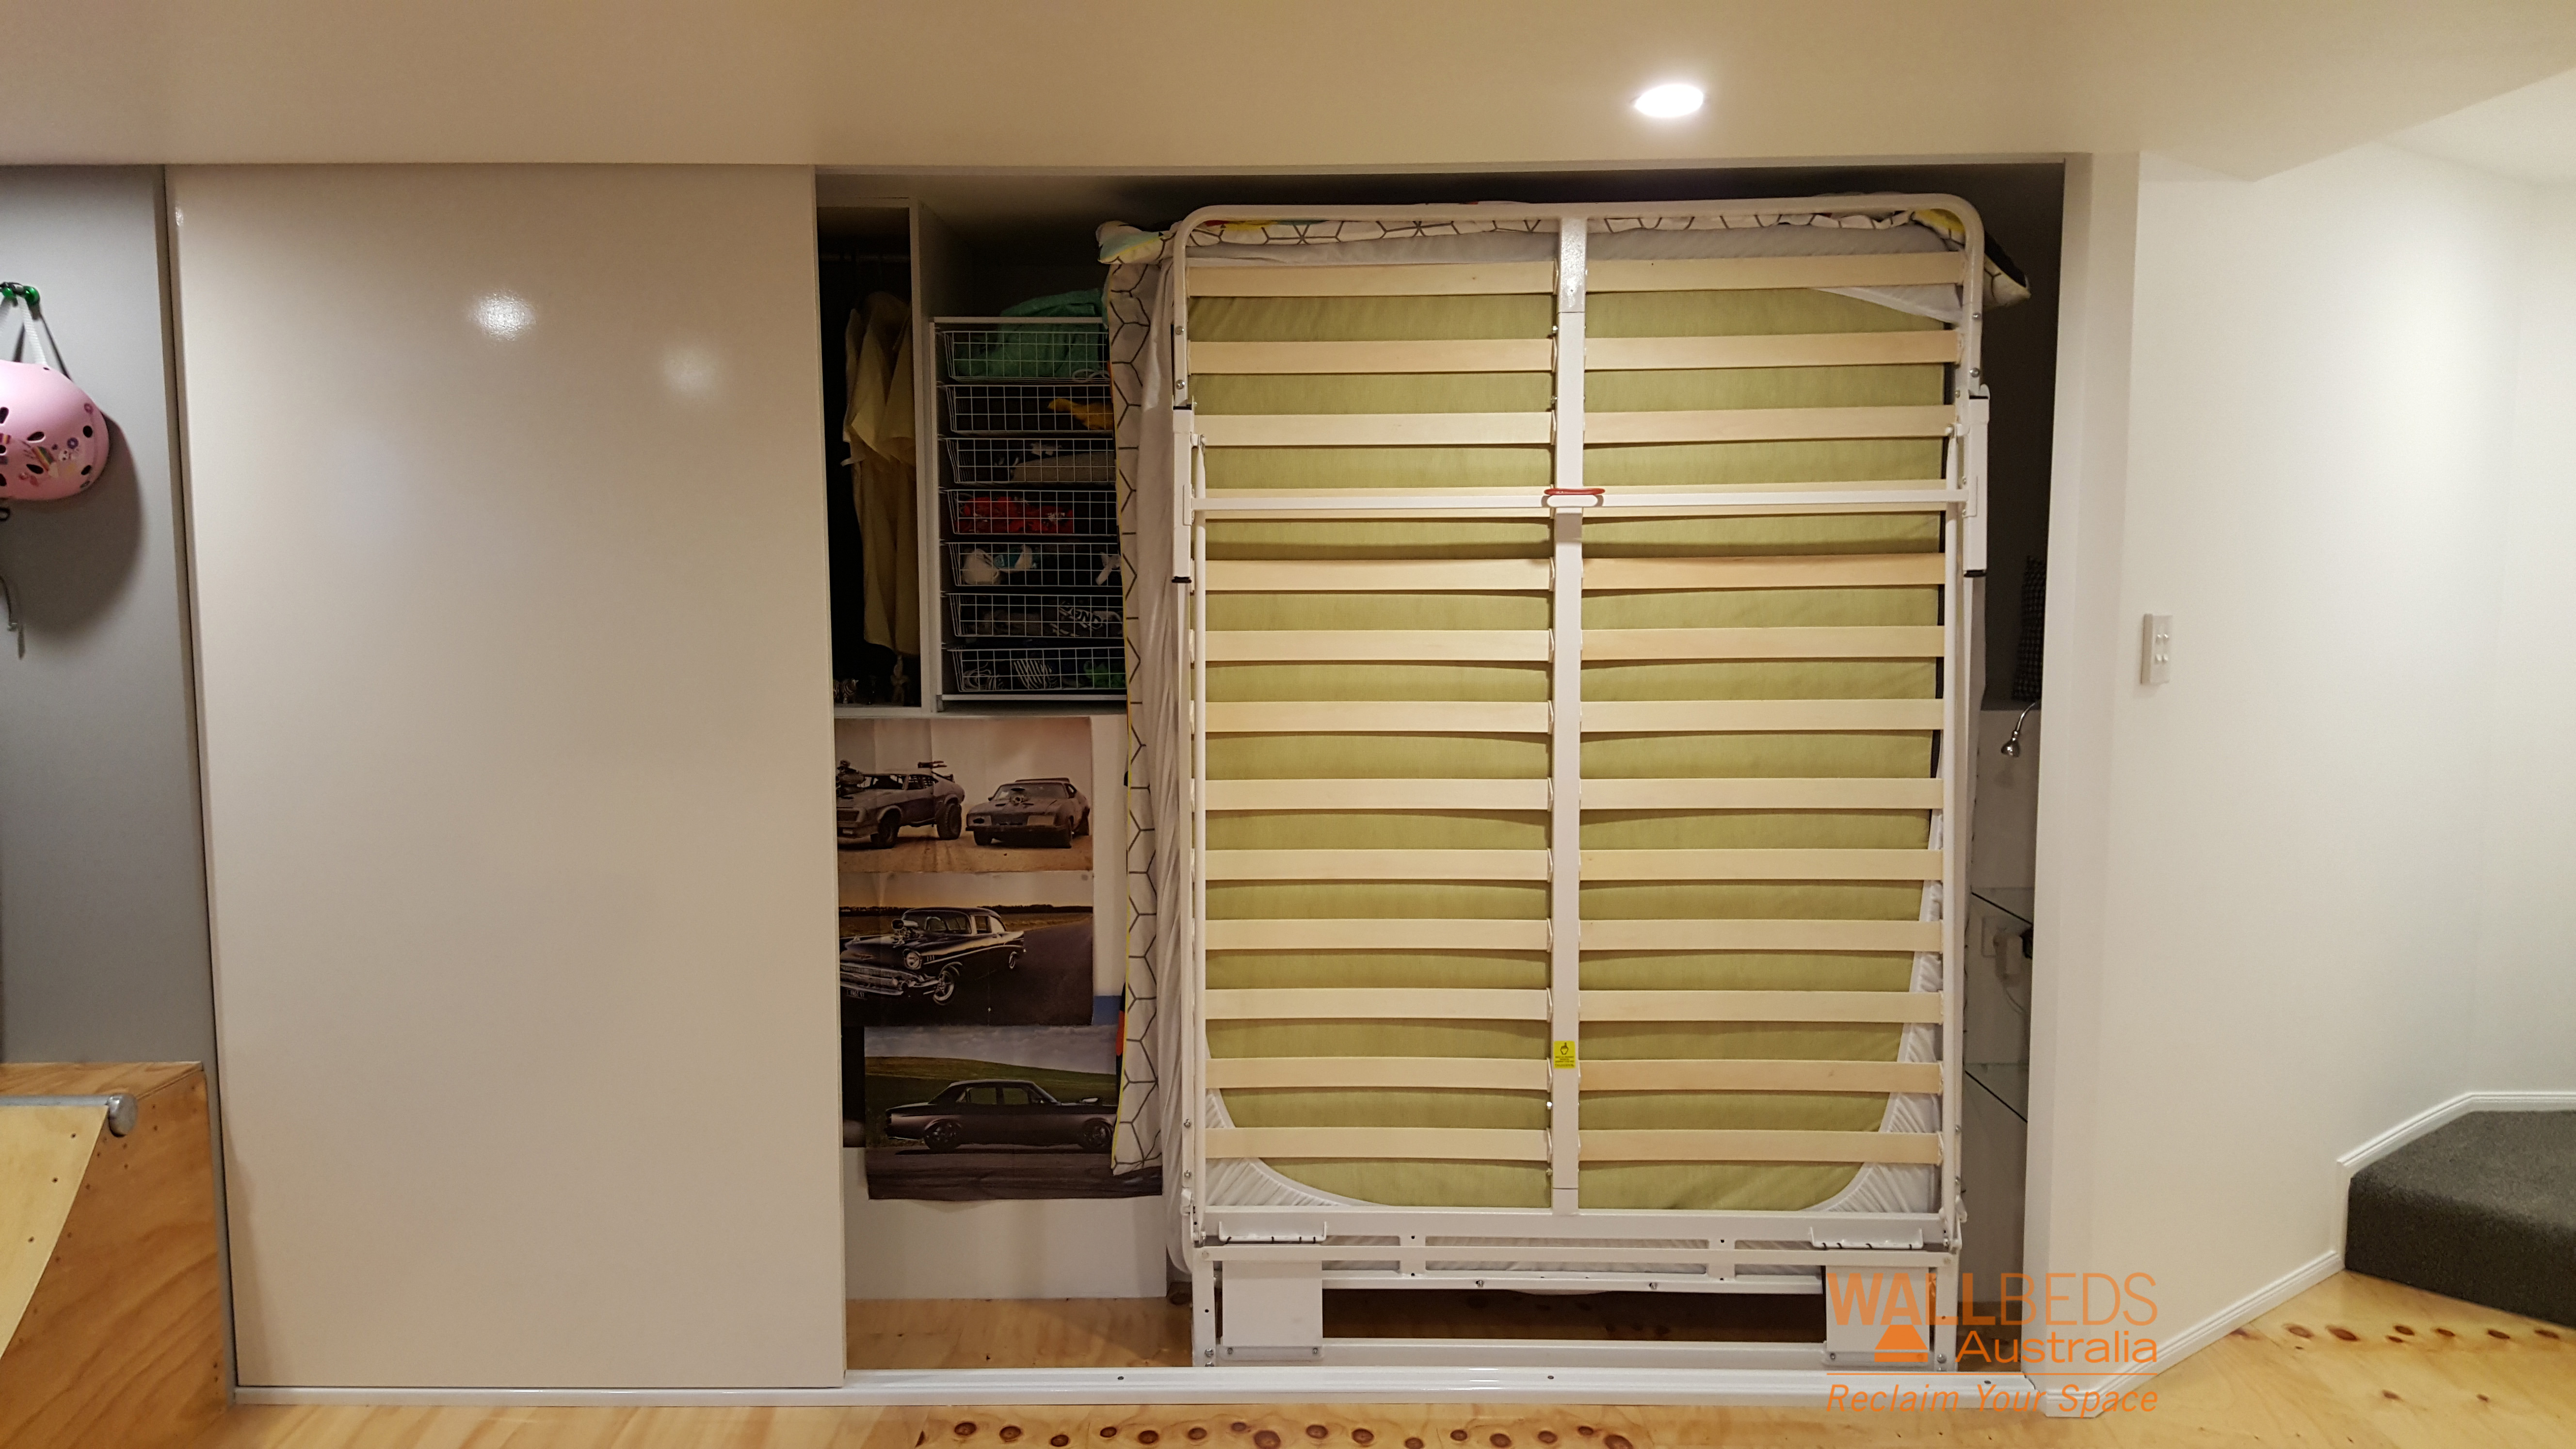 NeXt Bed frame in a closet